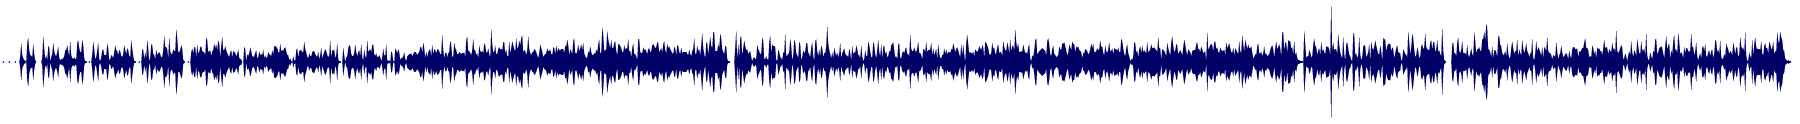 waveform of track #72216